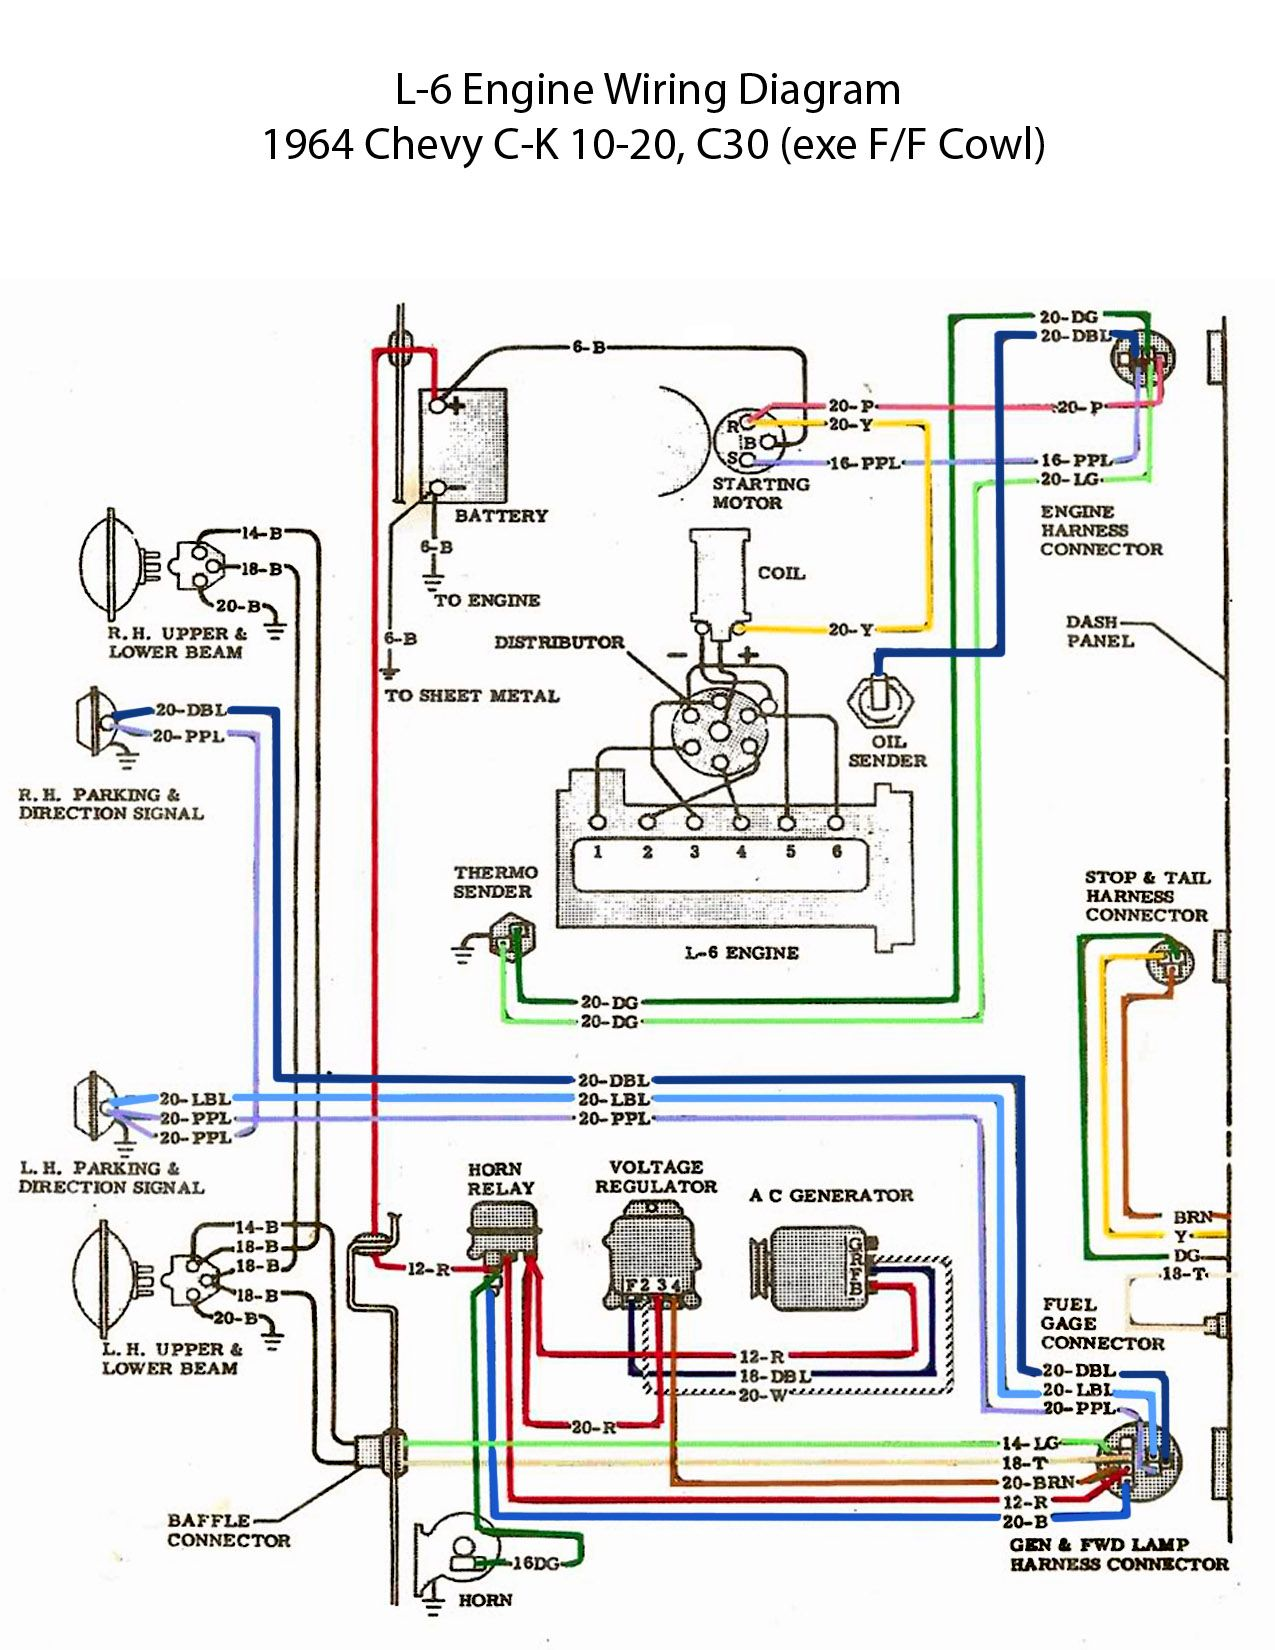 electric l 6 engine wiring diagram 60s chevy c10 wiring